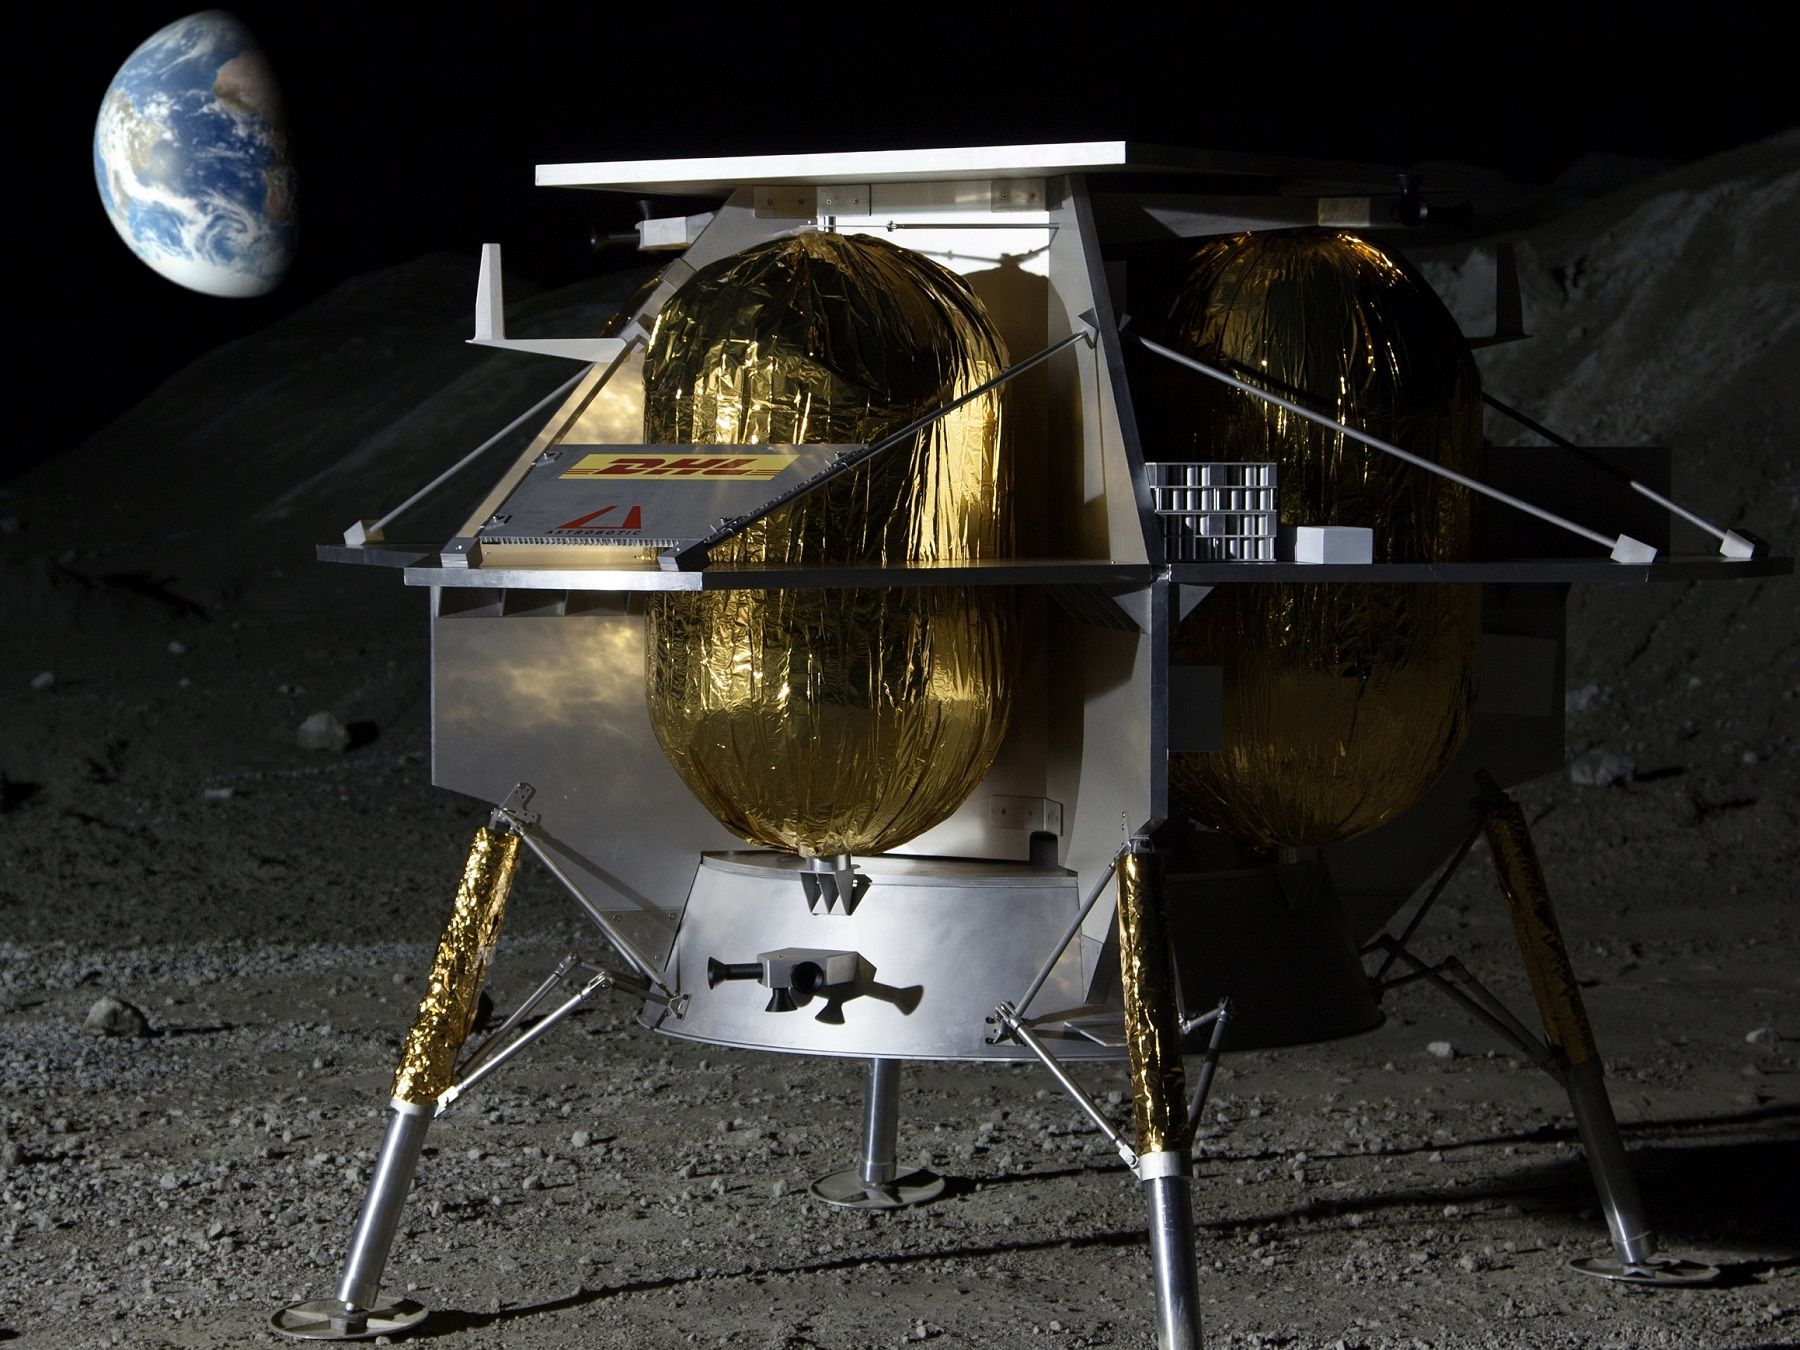 Plans detailed for first U.S. mission to land on moon in nearly 50 years